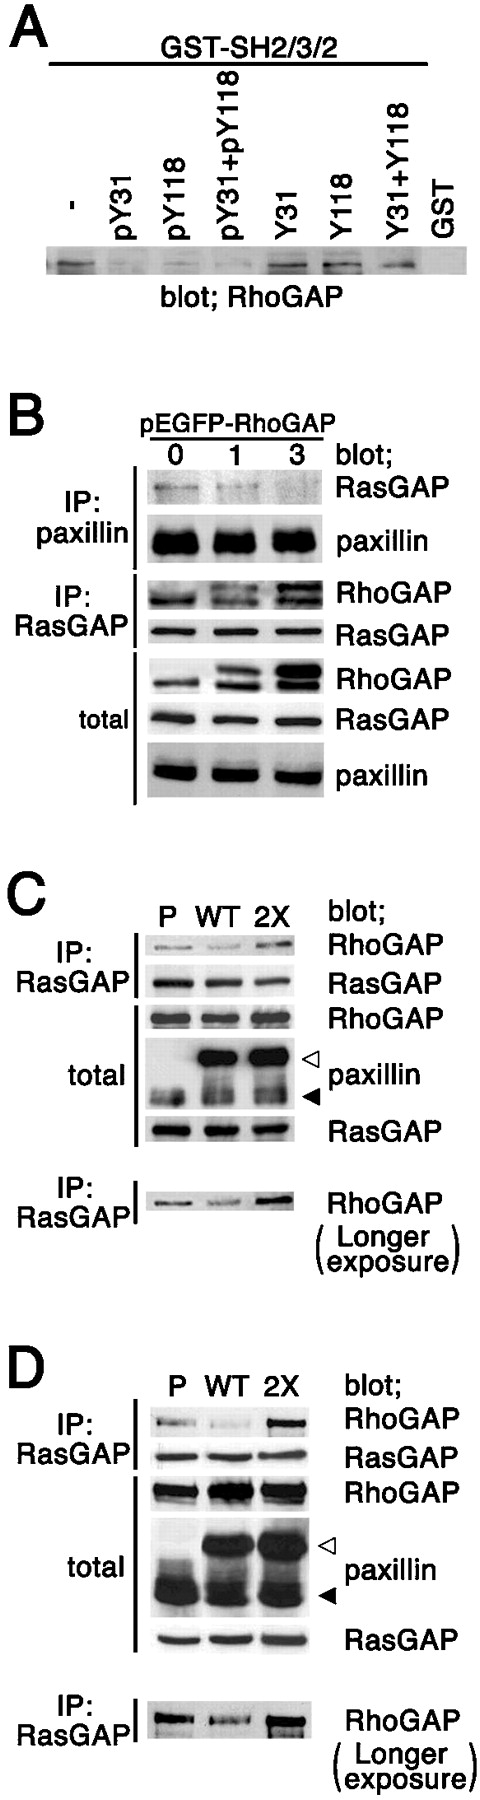 Competition of Tyr31/118-phosphorylated paxillin with p190RhoGAP for binding to p120RasGAP. (A) 3Y1/v-Src cell lysates were incubated with the p120RasGAP GST-SH2-SH3-SH2 protein, preincubated with a paxillin peptide (or combinations of peptides) as in Fig. 3 E. The control included the GST fusion protein without incubation with peptides (−). Proteins precipitated were analyzed by anti-p190RhoGAP immunoblotting. (B and C) COS7 cells were transiently transfected with 0, 1, or 3 μg of pEGFP-RhoGAP, as indicated (B), or transfected with 3 μg of pBabe/EGFP-paxillin (WT) or 3 μg of pBabe/EGFP-paxillin 2X (2X), as indicate (C). Mock-transfected cells were also included (C, P). 24 h later, cells were detached from culture dishes by incubation with PBS containing 5 mM EDTA, washed, and replated onto collagen type I–coated dishes in the presence of 0.5% BSA for 1 h. Cells were then lysed, and protein coprecipitation was analyzed using an anti-paxillin antibody coupled with anti–mouse IgG-Sepharose beads (B), or an anti-RasGAP antibody (clone B4F8) coupled with protein A-Sepharose beads (C). Protein immunoblotting was performed as indicated, with immunoprecipitated proteins (IP) and total cell lysates (Total). (D) Amounts of p190RhoGAP coprecipitating with p120RasGAP using antibody B4F8 were analyzed, as above, with cell lysates from parental NMuMG cells (P), or NMuMG cells expressing EGFP-paxillin (WT) or cells expressing the 2X mutant (2X), all pretreated with TGFβ. (C and D) To show the difference in the amounts of p190RhoGAP coprecipitating with p120RasGAP, a longer exposure of the immunoblots shown on the top of each panel, is also shown at the bottom. Exposure time was 15 s for the top, and 2 min for the bottom. (B–D) Total cell lysates were included as controls (Total). Molecular sizes are shown on the left. ▴, endogenous paxillin; ▵, EGFP-tagged paxillin.